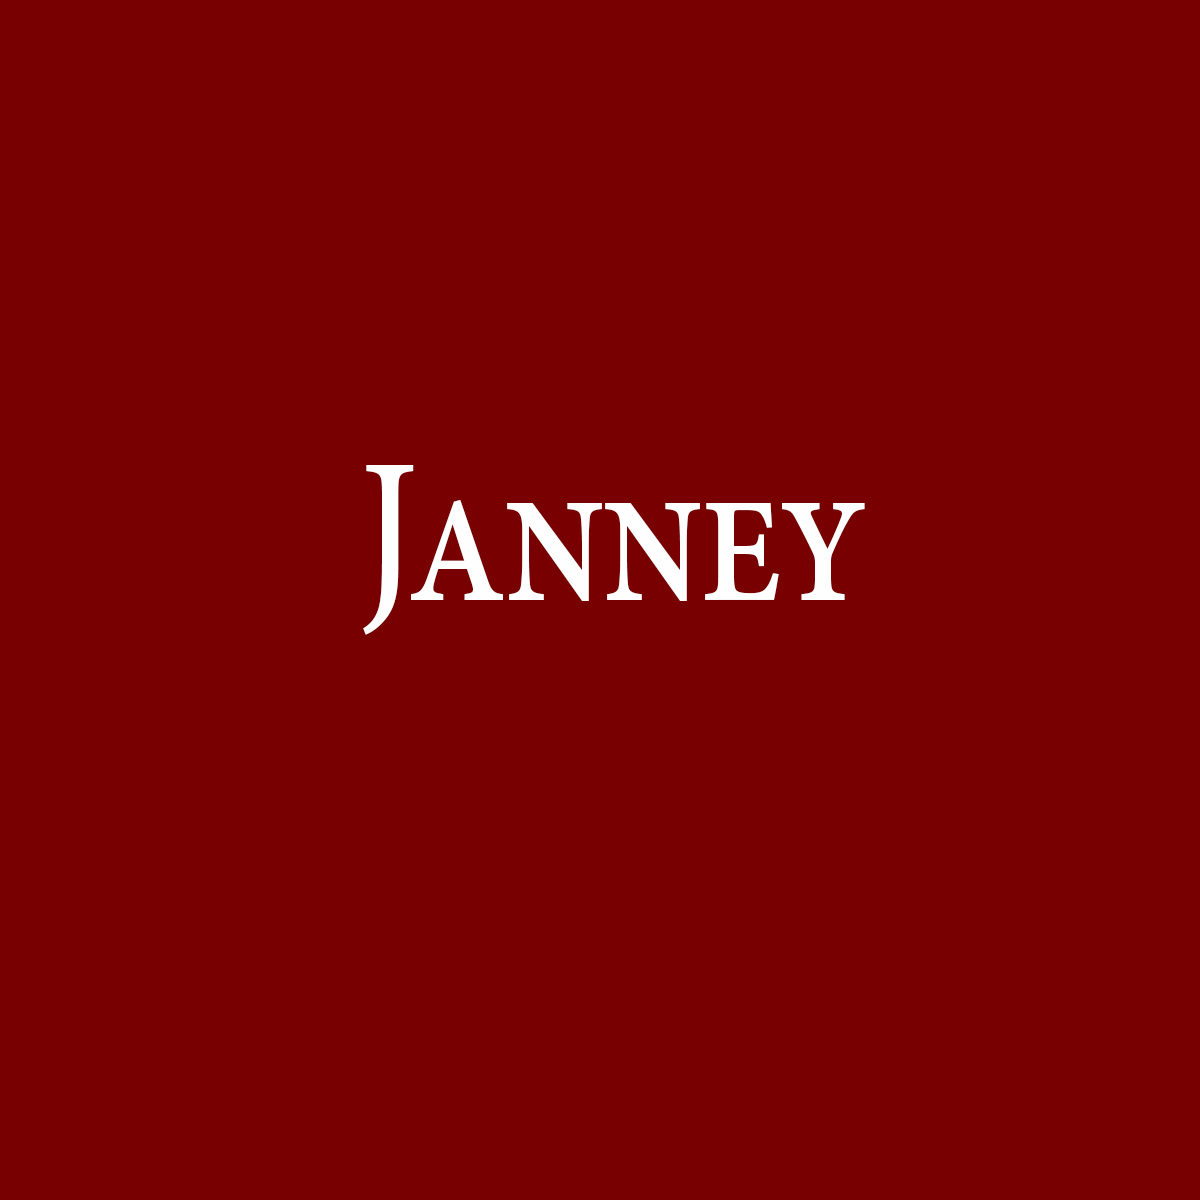 Janney.png